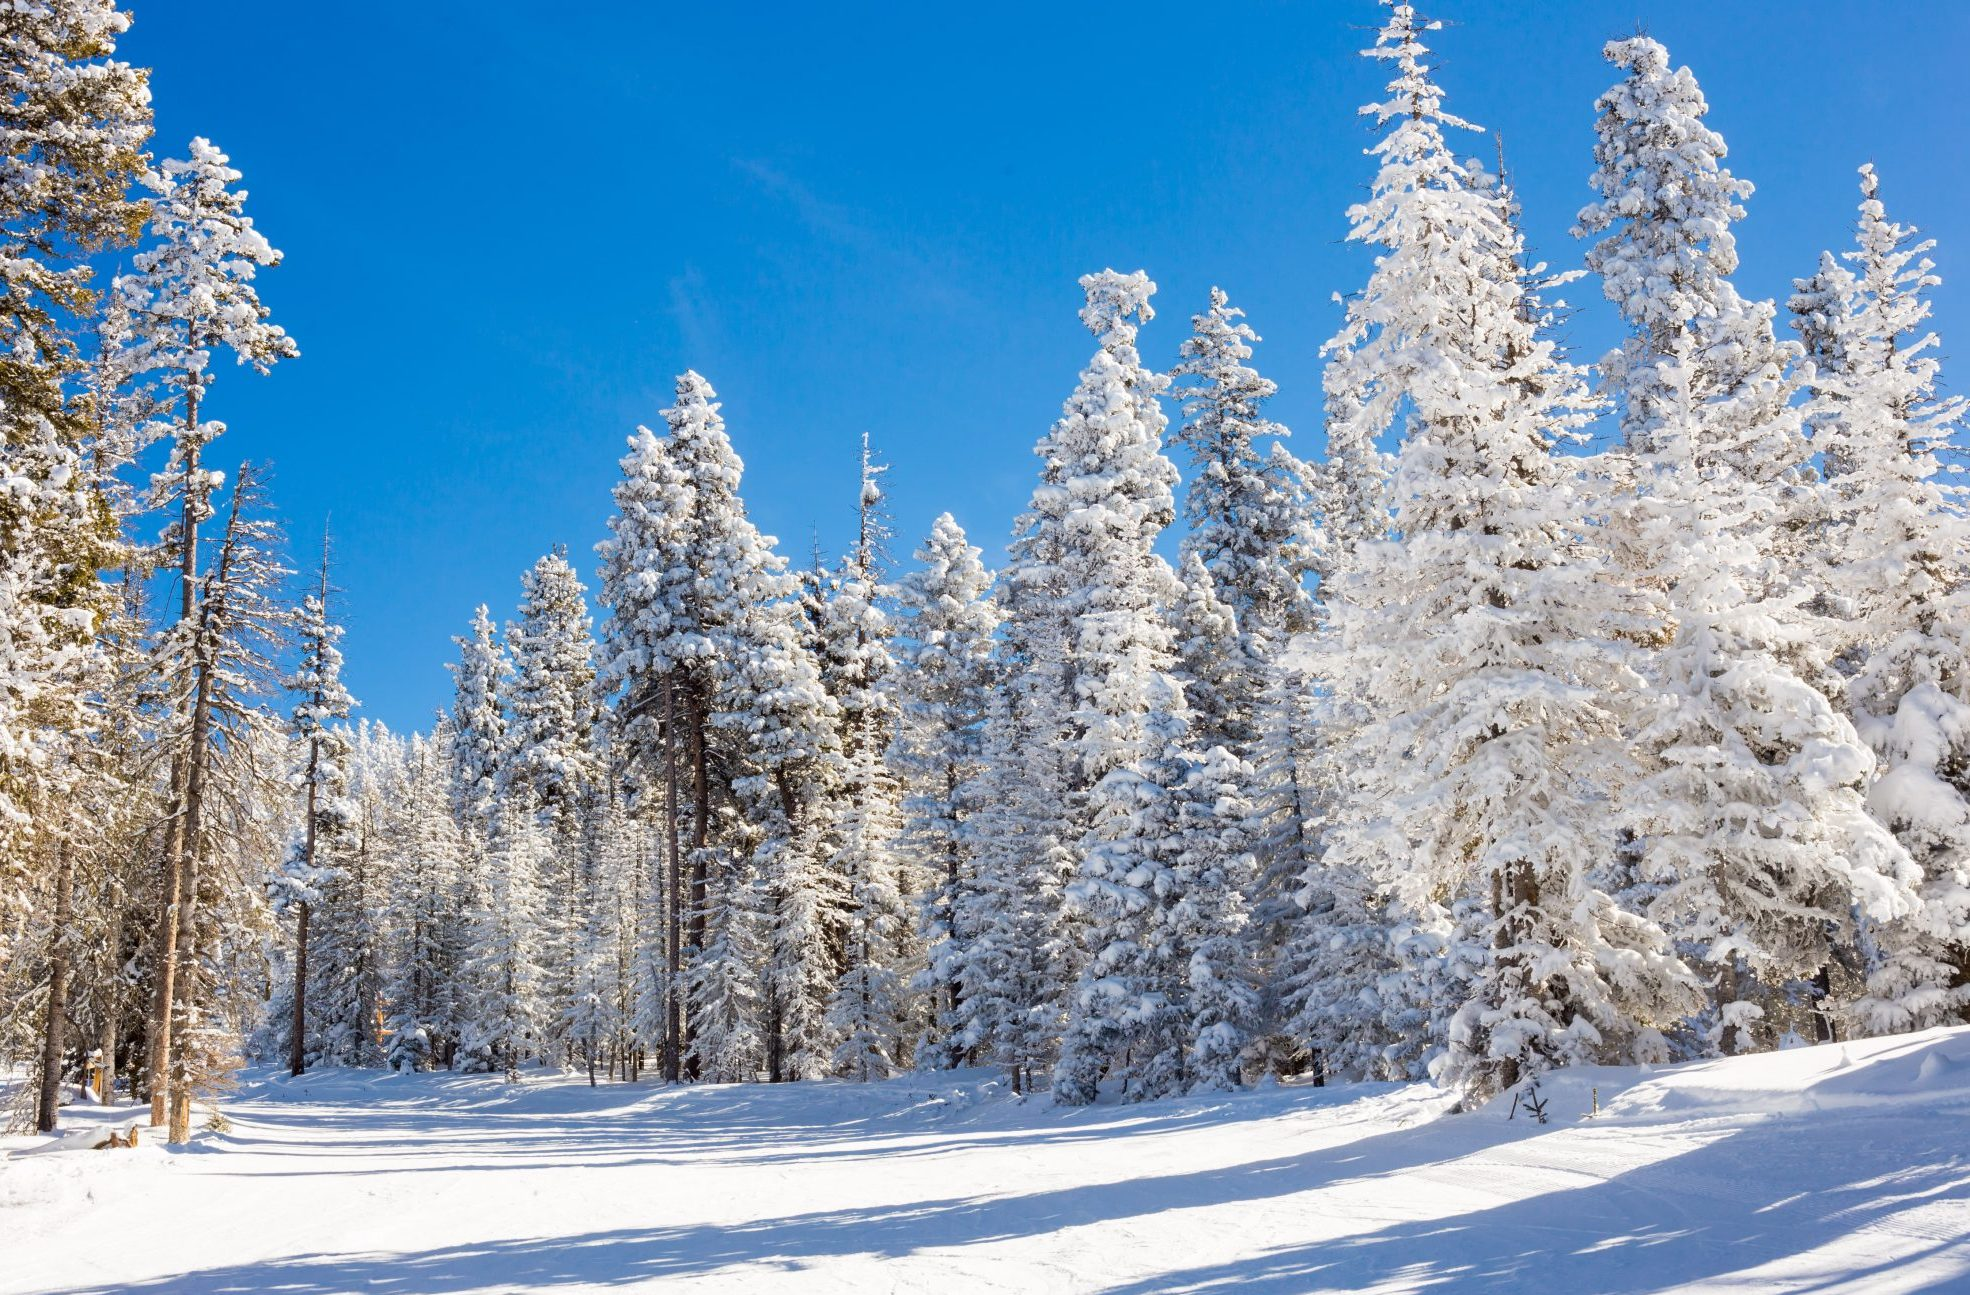 View at the ski slopes piste in the mountains of Angel Fire, New Mexico